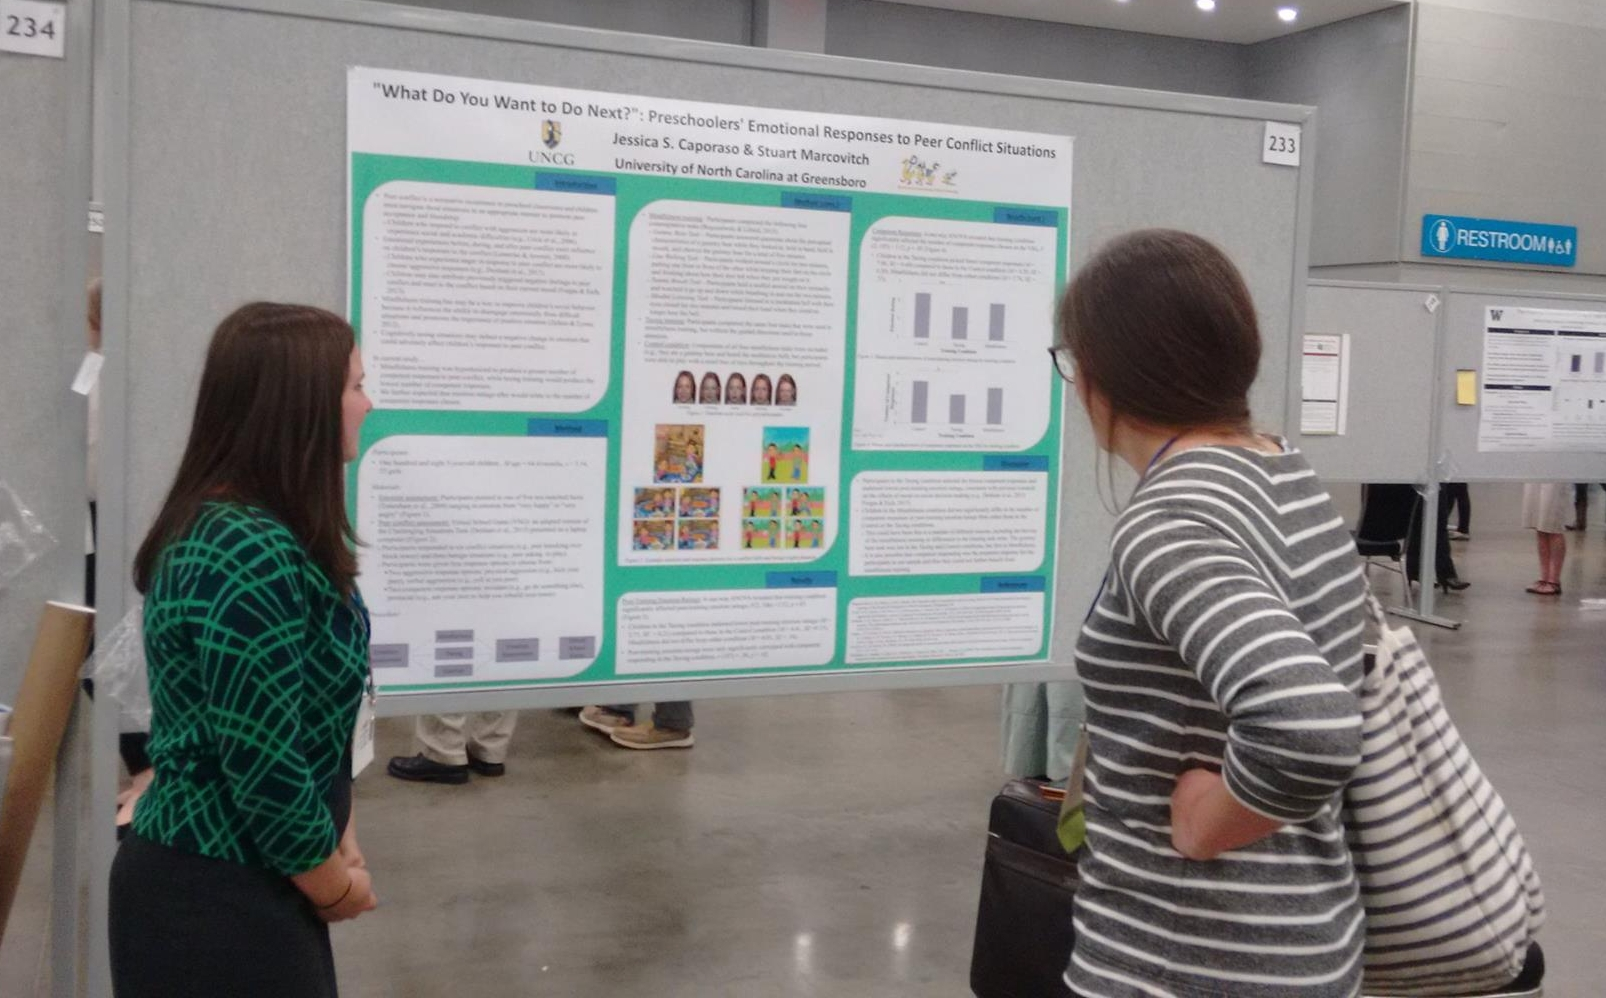 Jessica Caporaso talking to an interested colleague about the effect of children's emotions on peer interactions at SRCD 2017